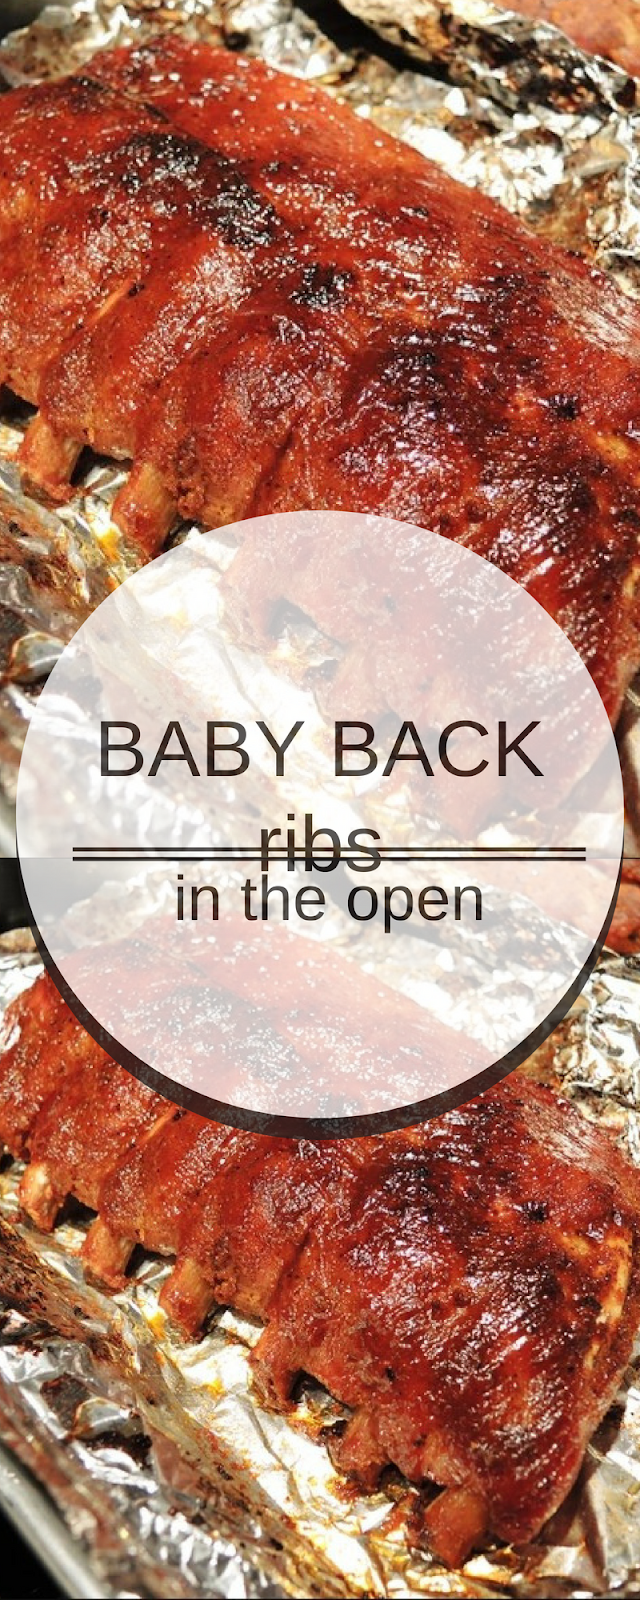 Fall Off The Bone Baby Back Ribs In The Oven Ribs In Oven Slow Cooked Meals Babyback Ribs In Oven